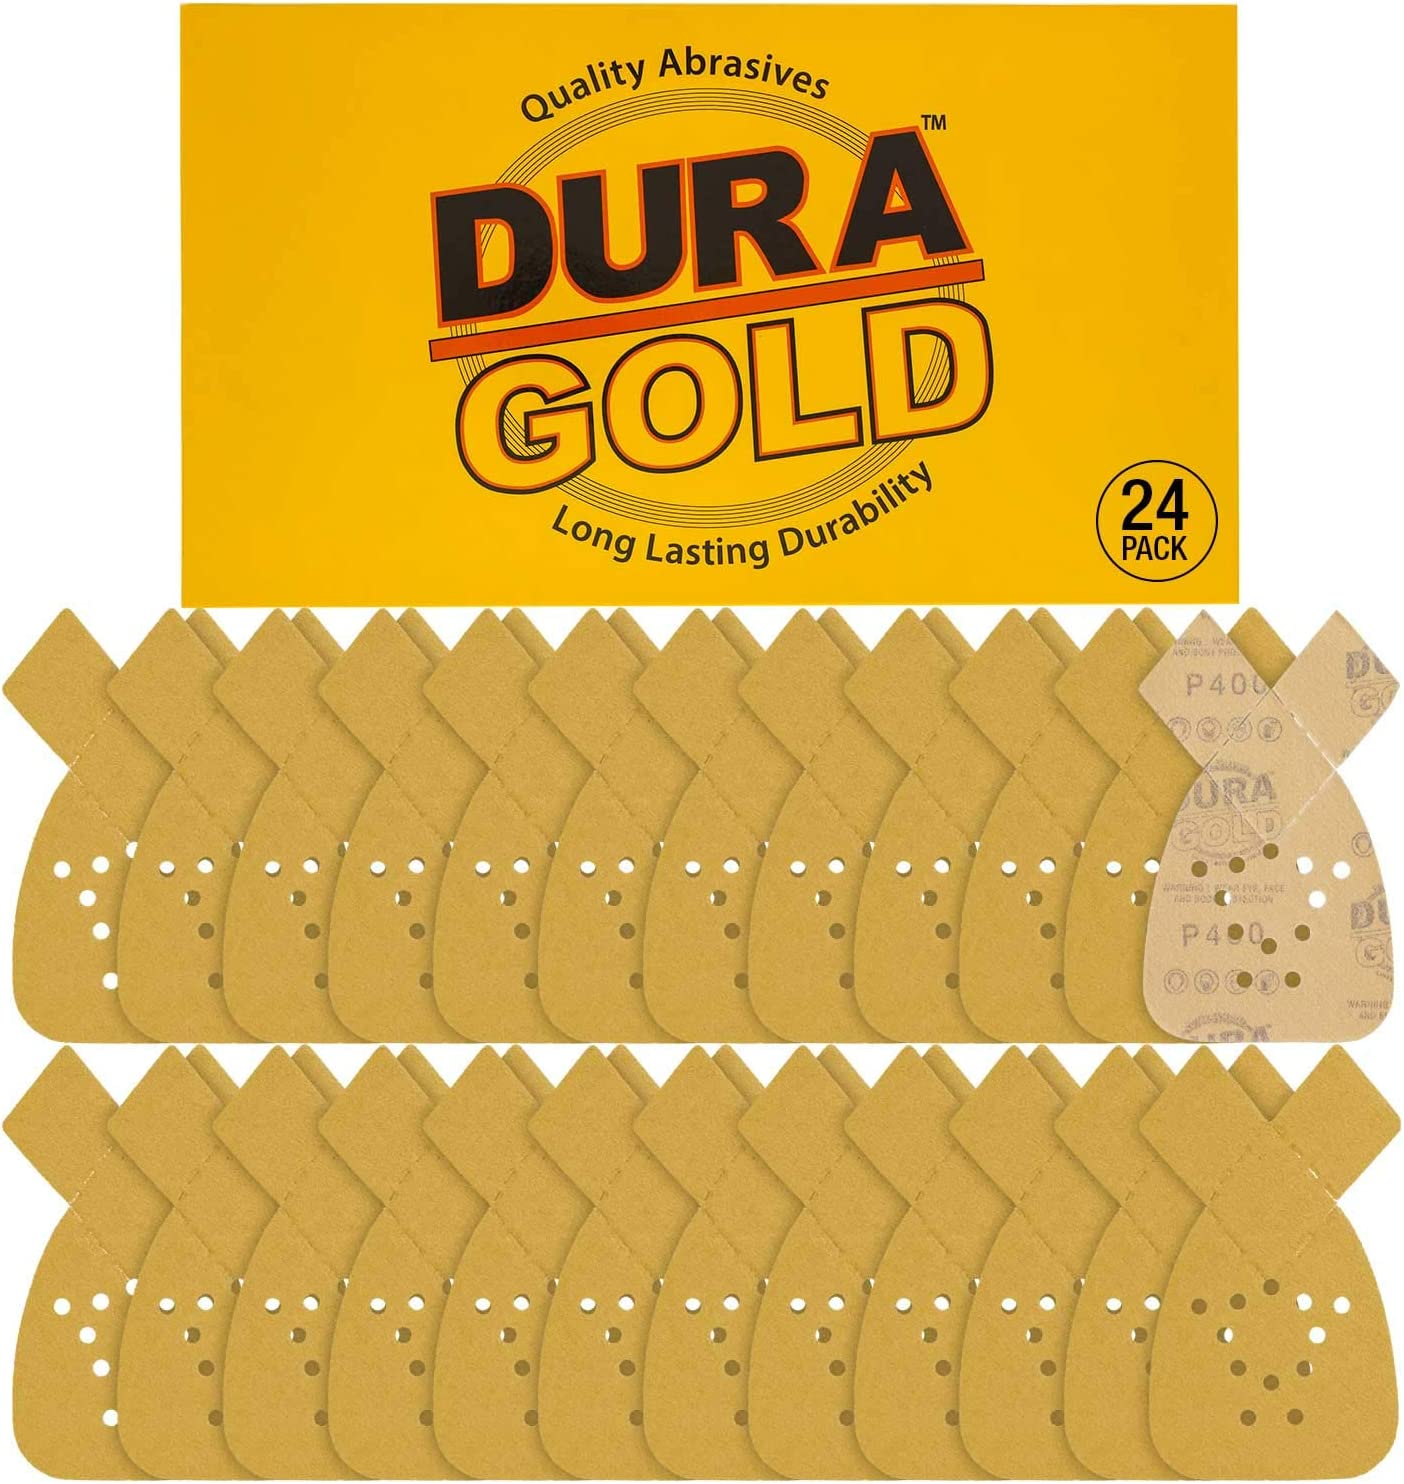 Dura-Gold - Premium Hook & Loop - 24 Sheets of 400 Grit 12-Hole Hook & Loop Sanding Sheets for Mouse Sanders - Box of 24 Sheets fits Black and Decker mouse sanders